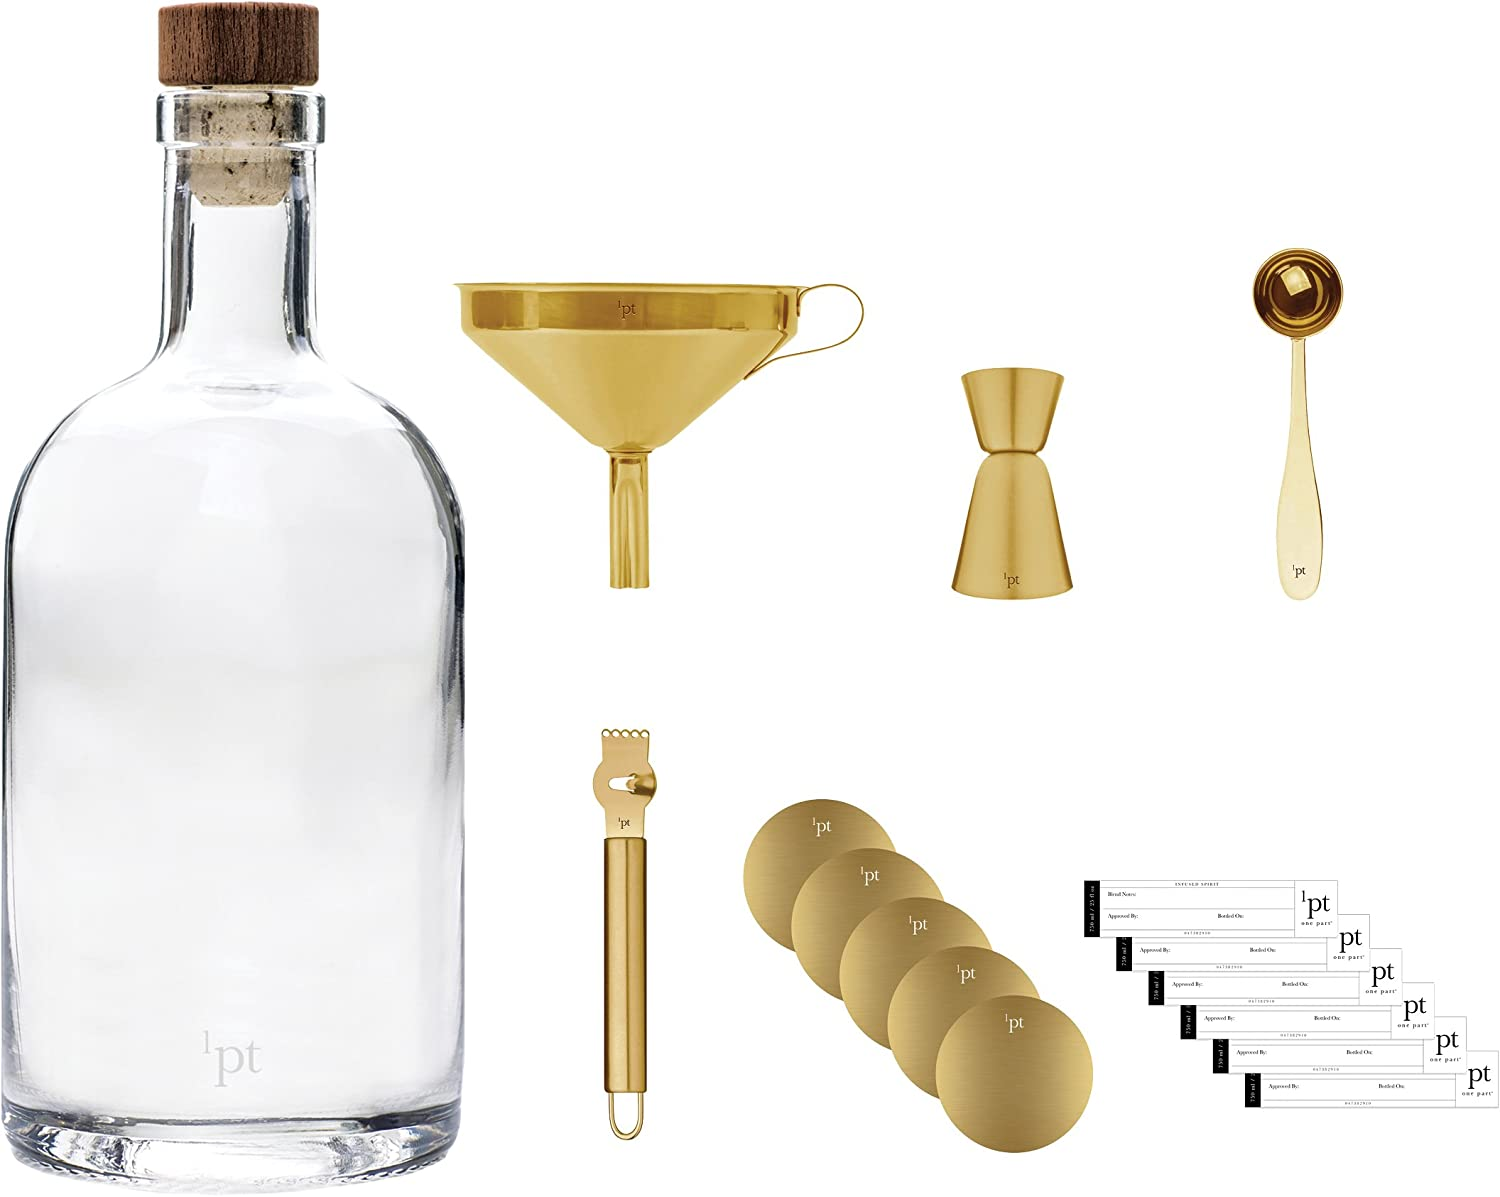 Teroforma 1pt Bar Bottle Kit Home Bar Tools for Infused Cocktails 7-Piece Set